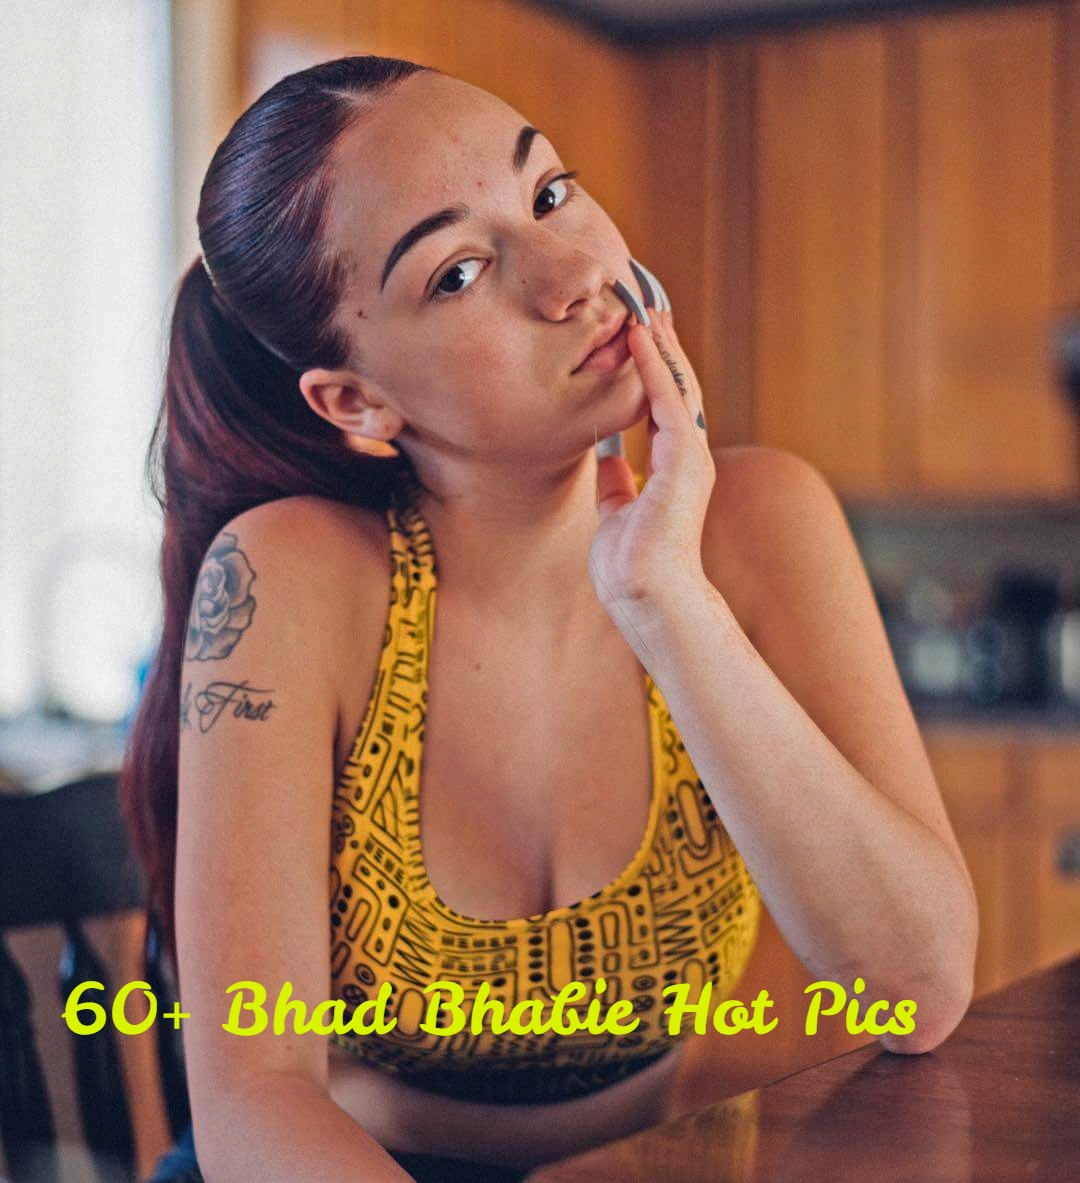 Bhad Bhabie a.k.a Danielle Bregoli sexy Pictures